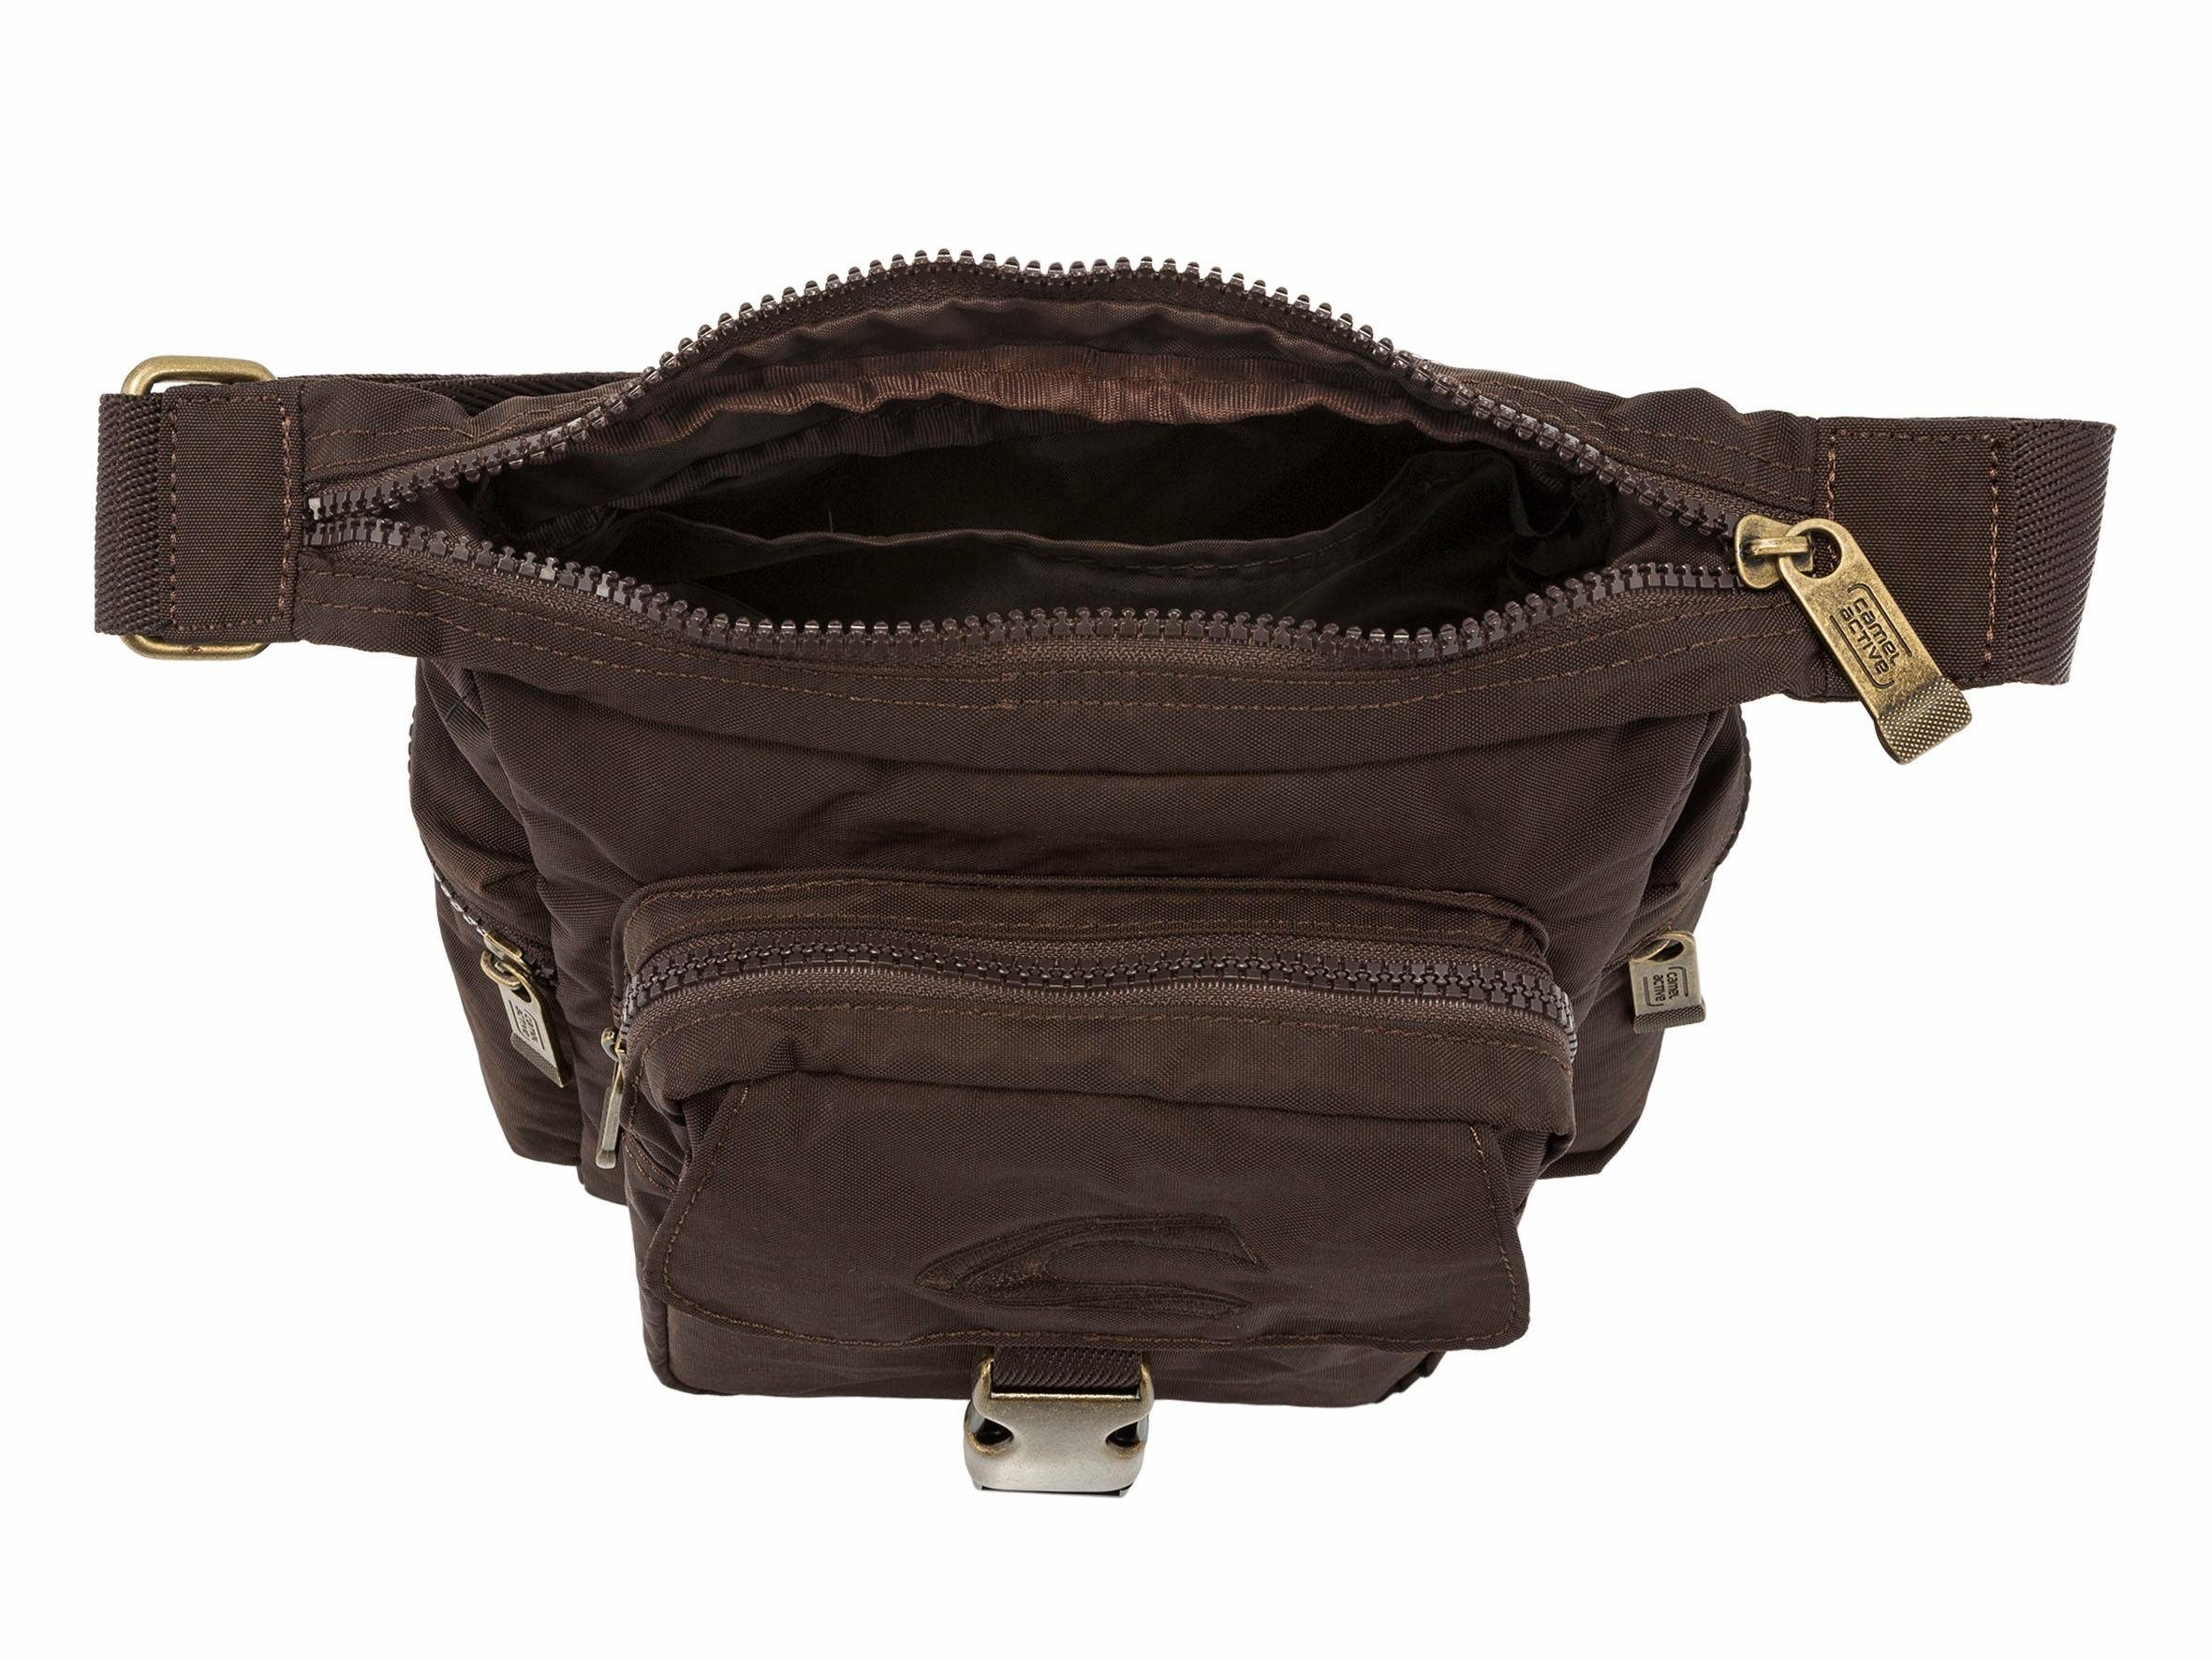 Bag Ideal Festival Active Camel Crossbody »journey« Konzert Für Umhängetasche Oder w6XgqI